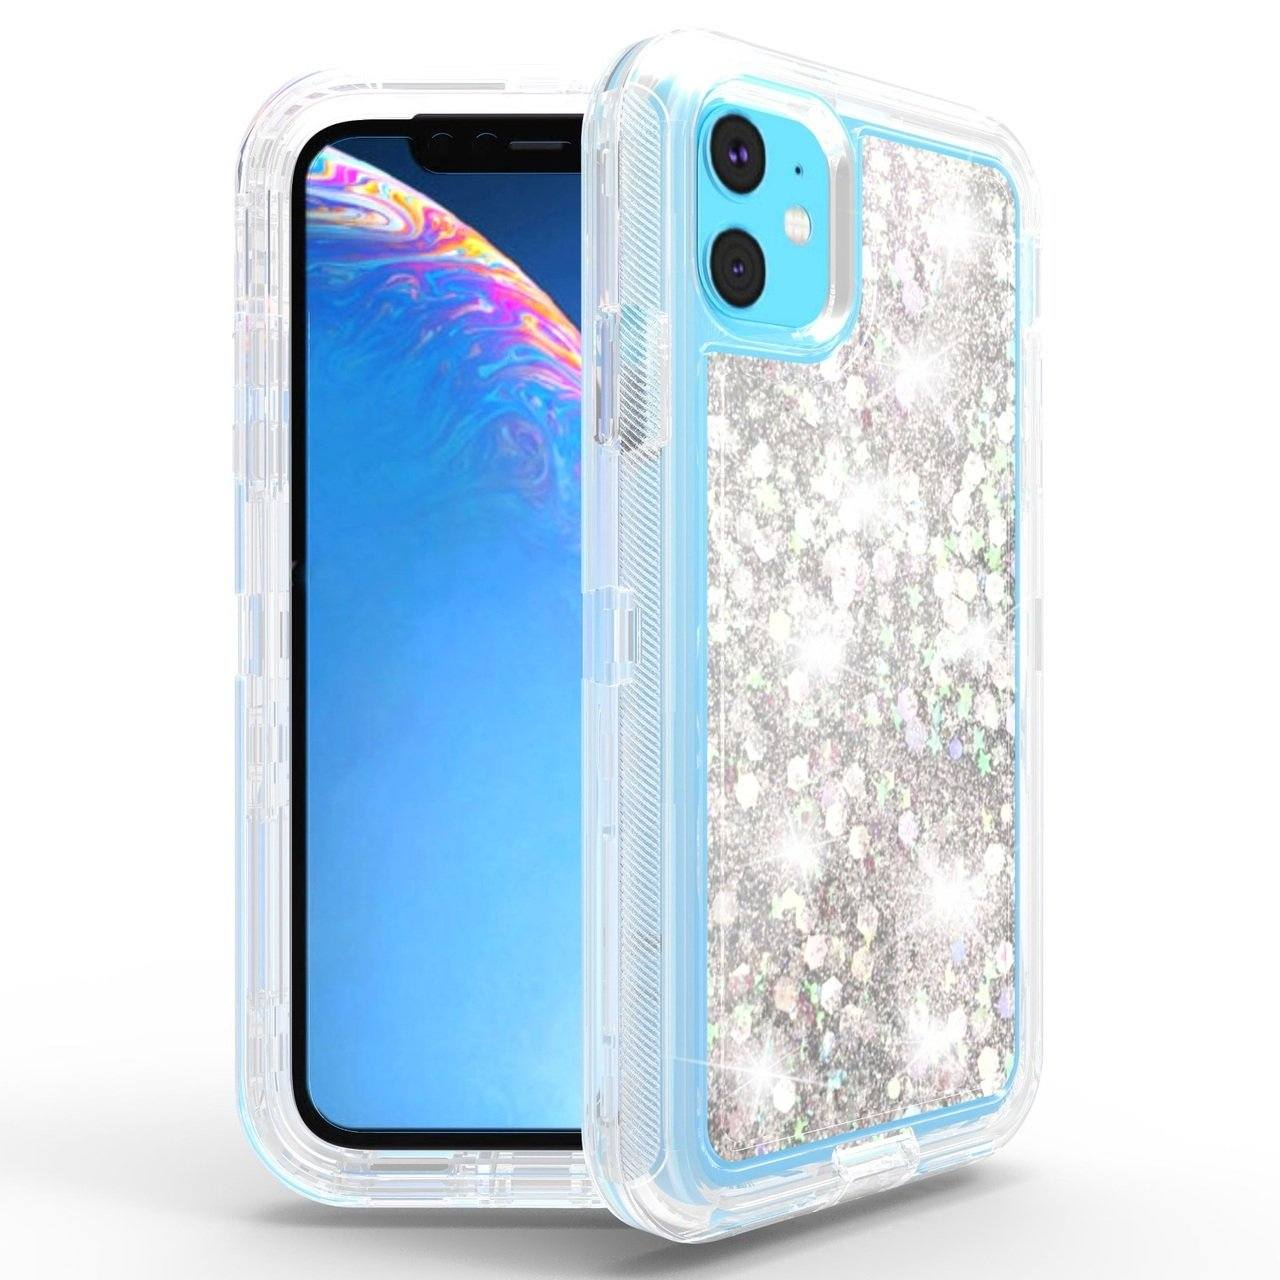 Liquid Protector Case for iPhone 11  - Silver